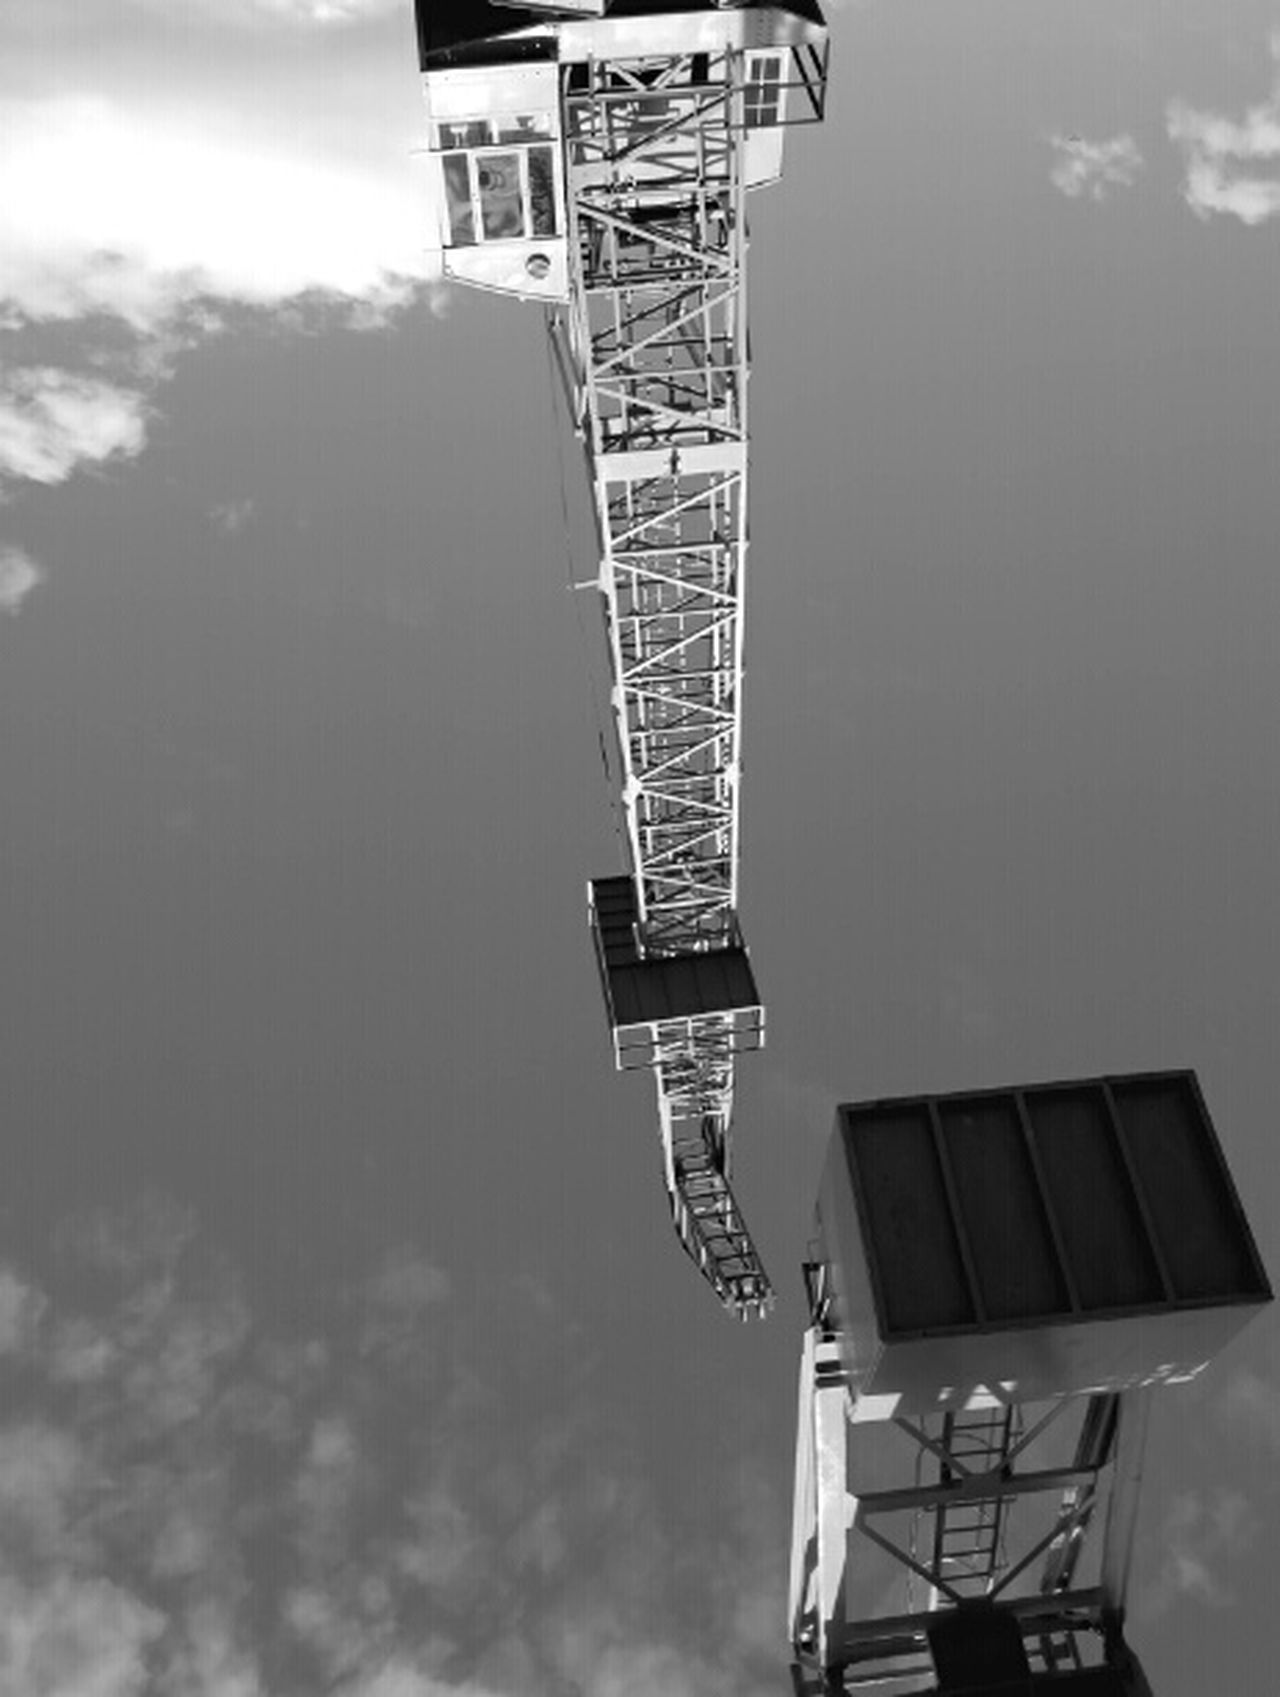 https://youtu.be/eqfiHfDmOnw one more Sunday_flip Fortheloveofblackandwhite Cranes Lookingup The Moment Falling Down New Cargos Shades Of Grey EyeEm Best Shots - Black + White The Minimals (less Edit Juxt Photography)